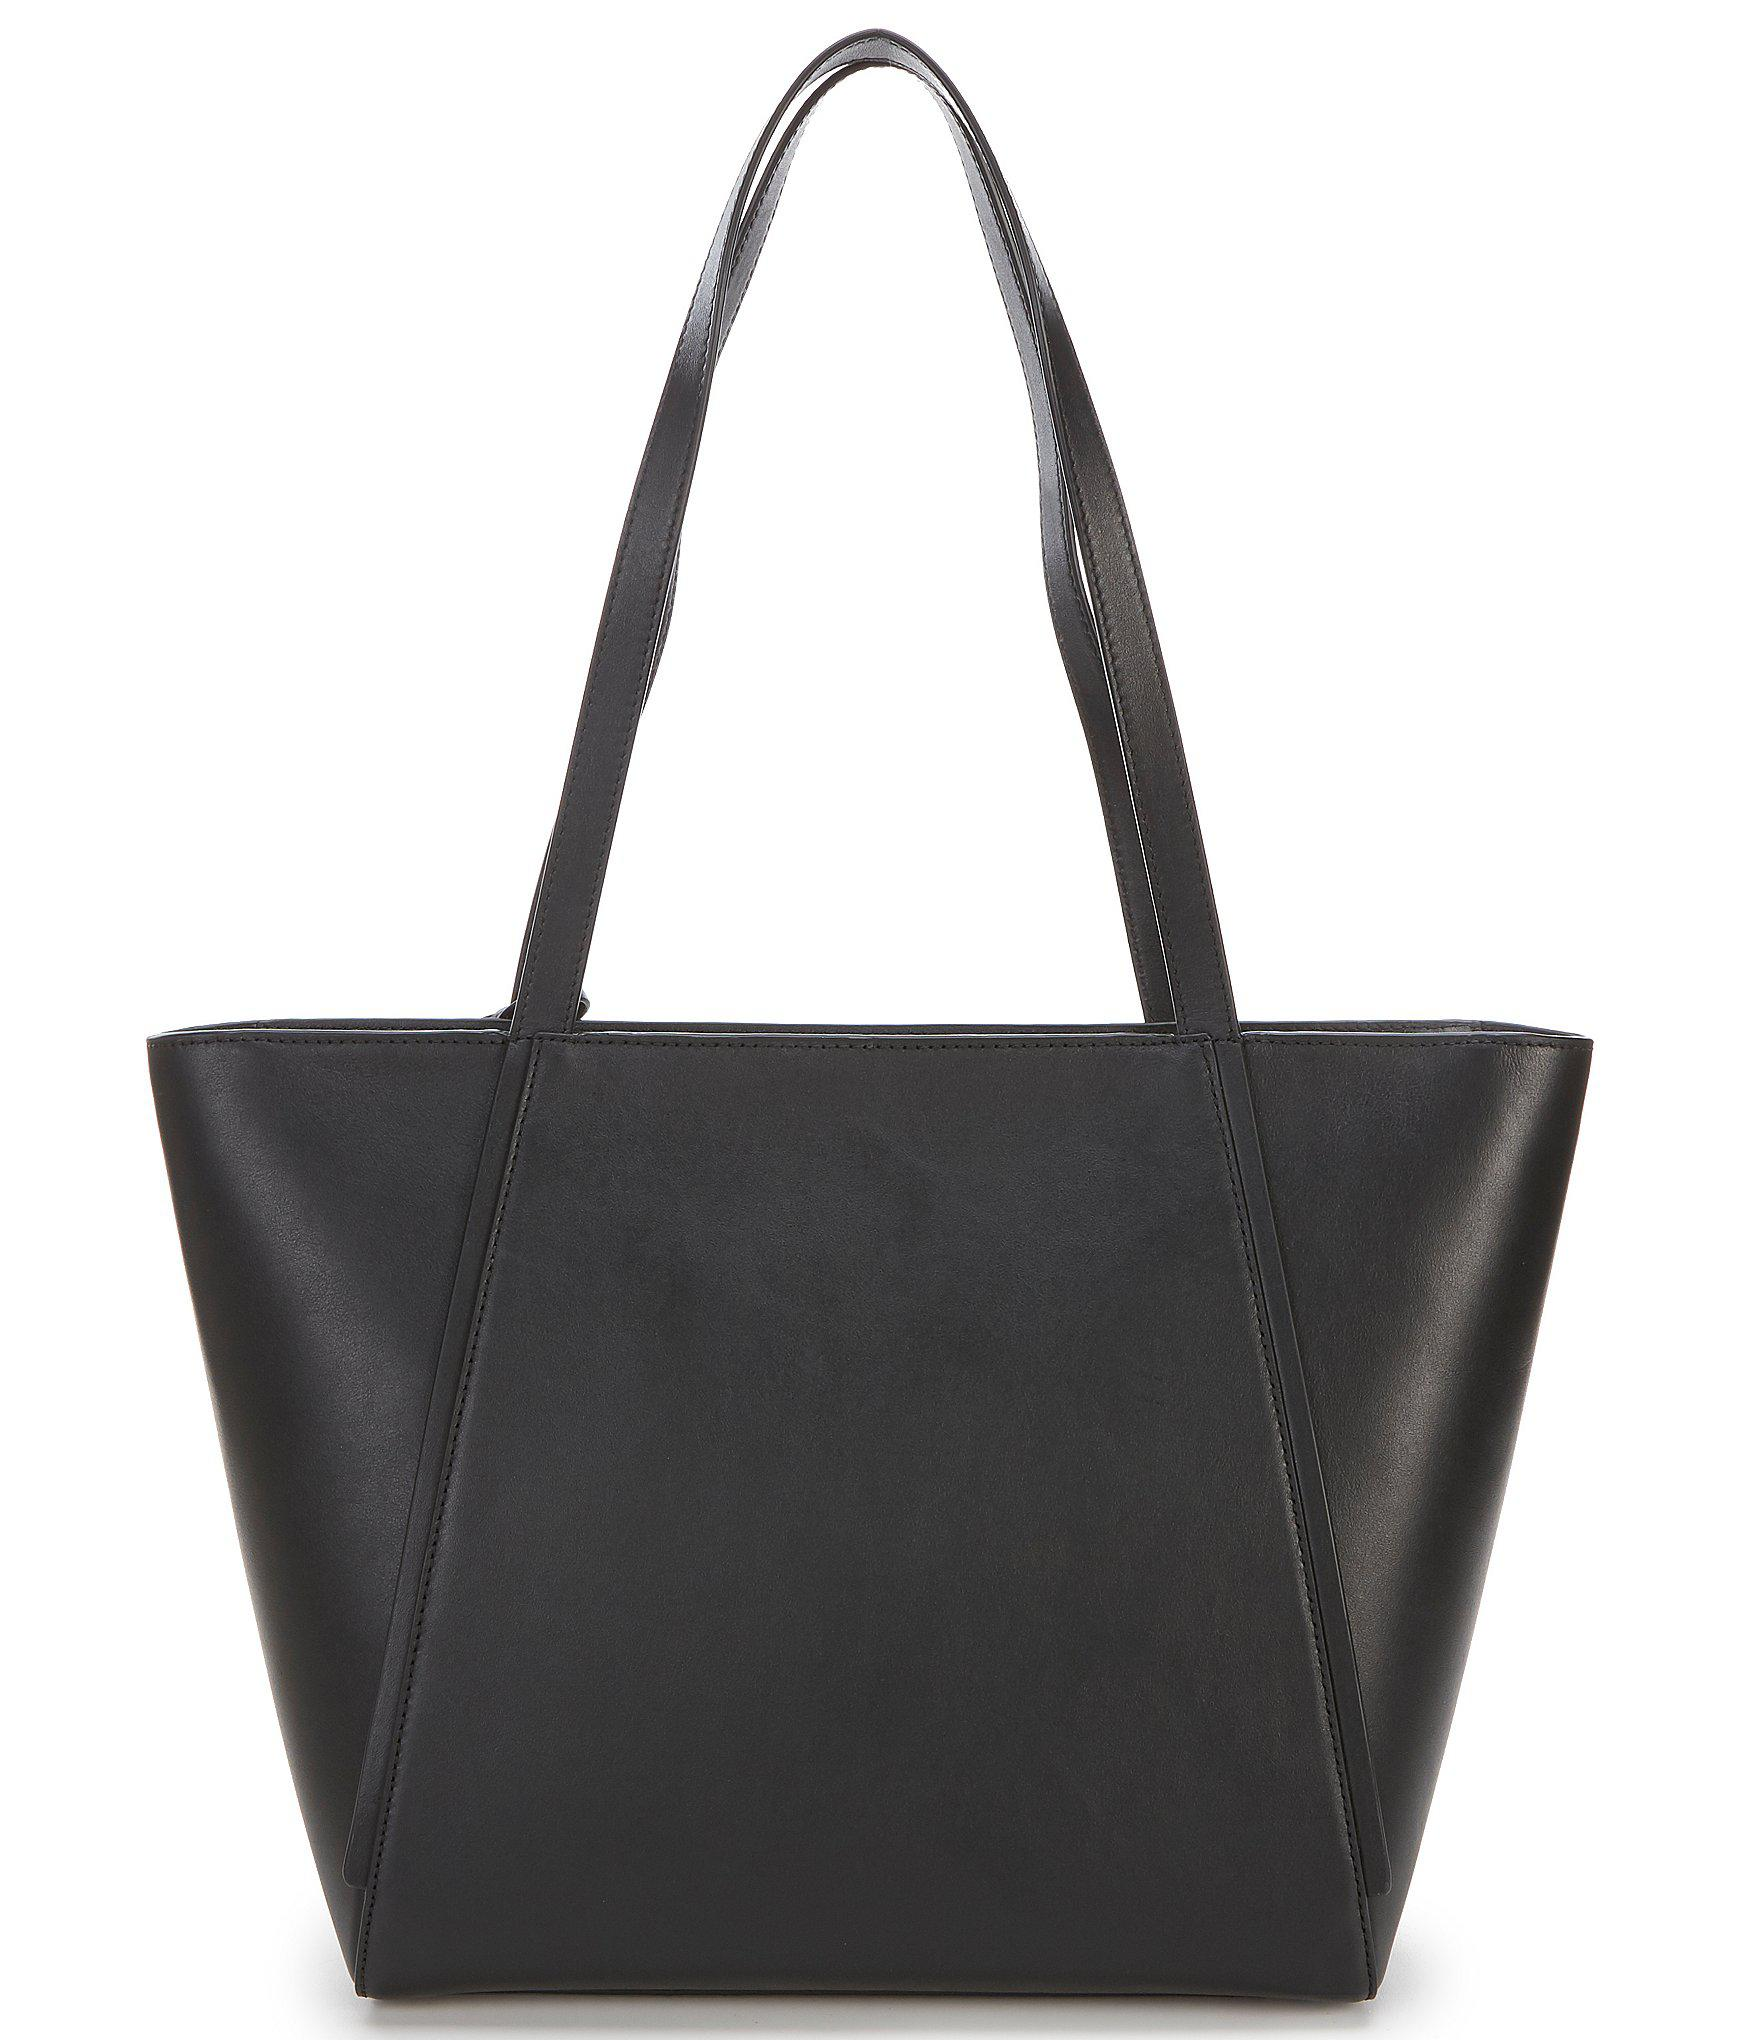 6616968f36ce MICHAEL Michael Kors - Black Whitney Large Top Zip Tote Bag - Lyst. View  fullscreen